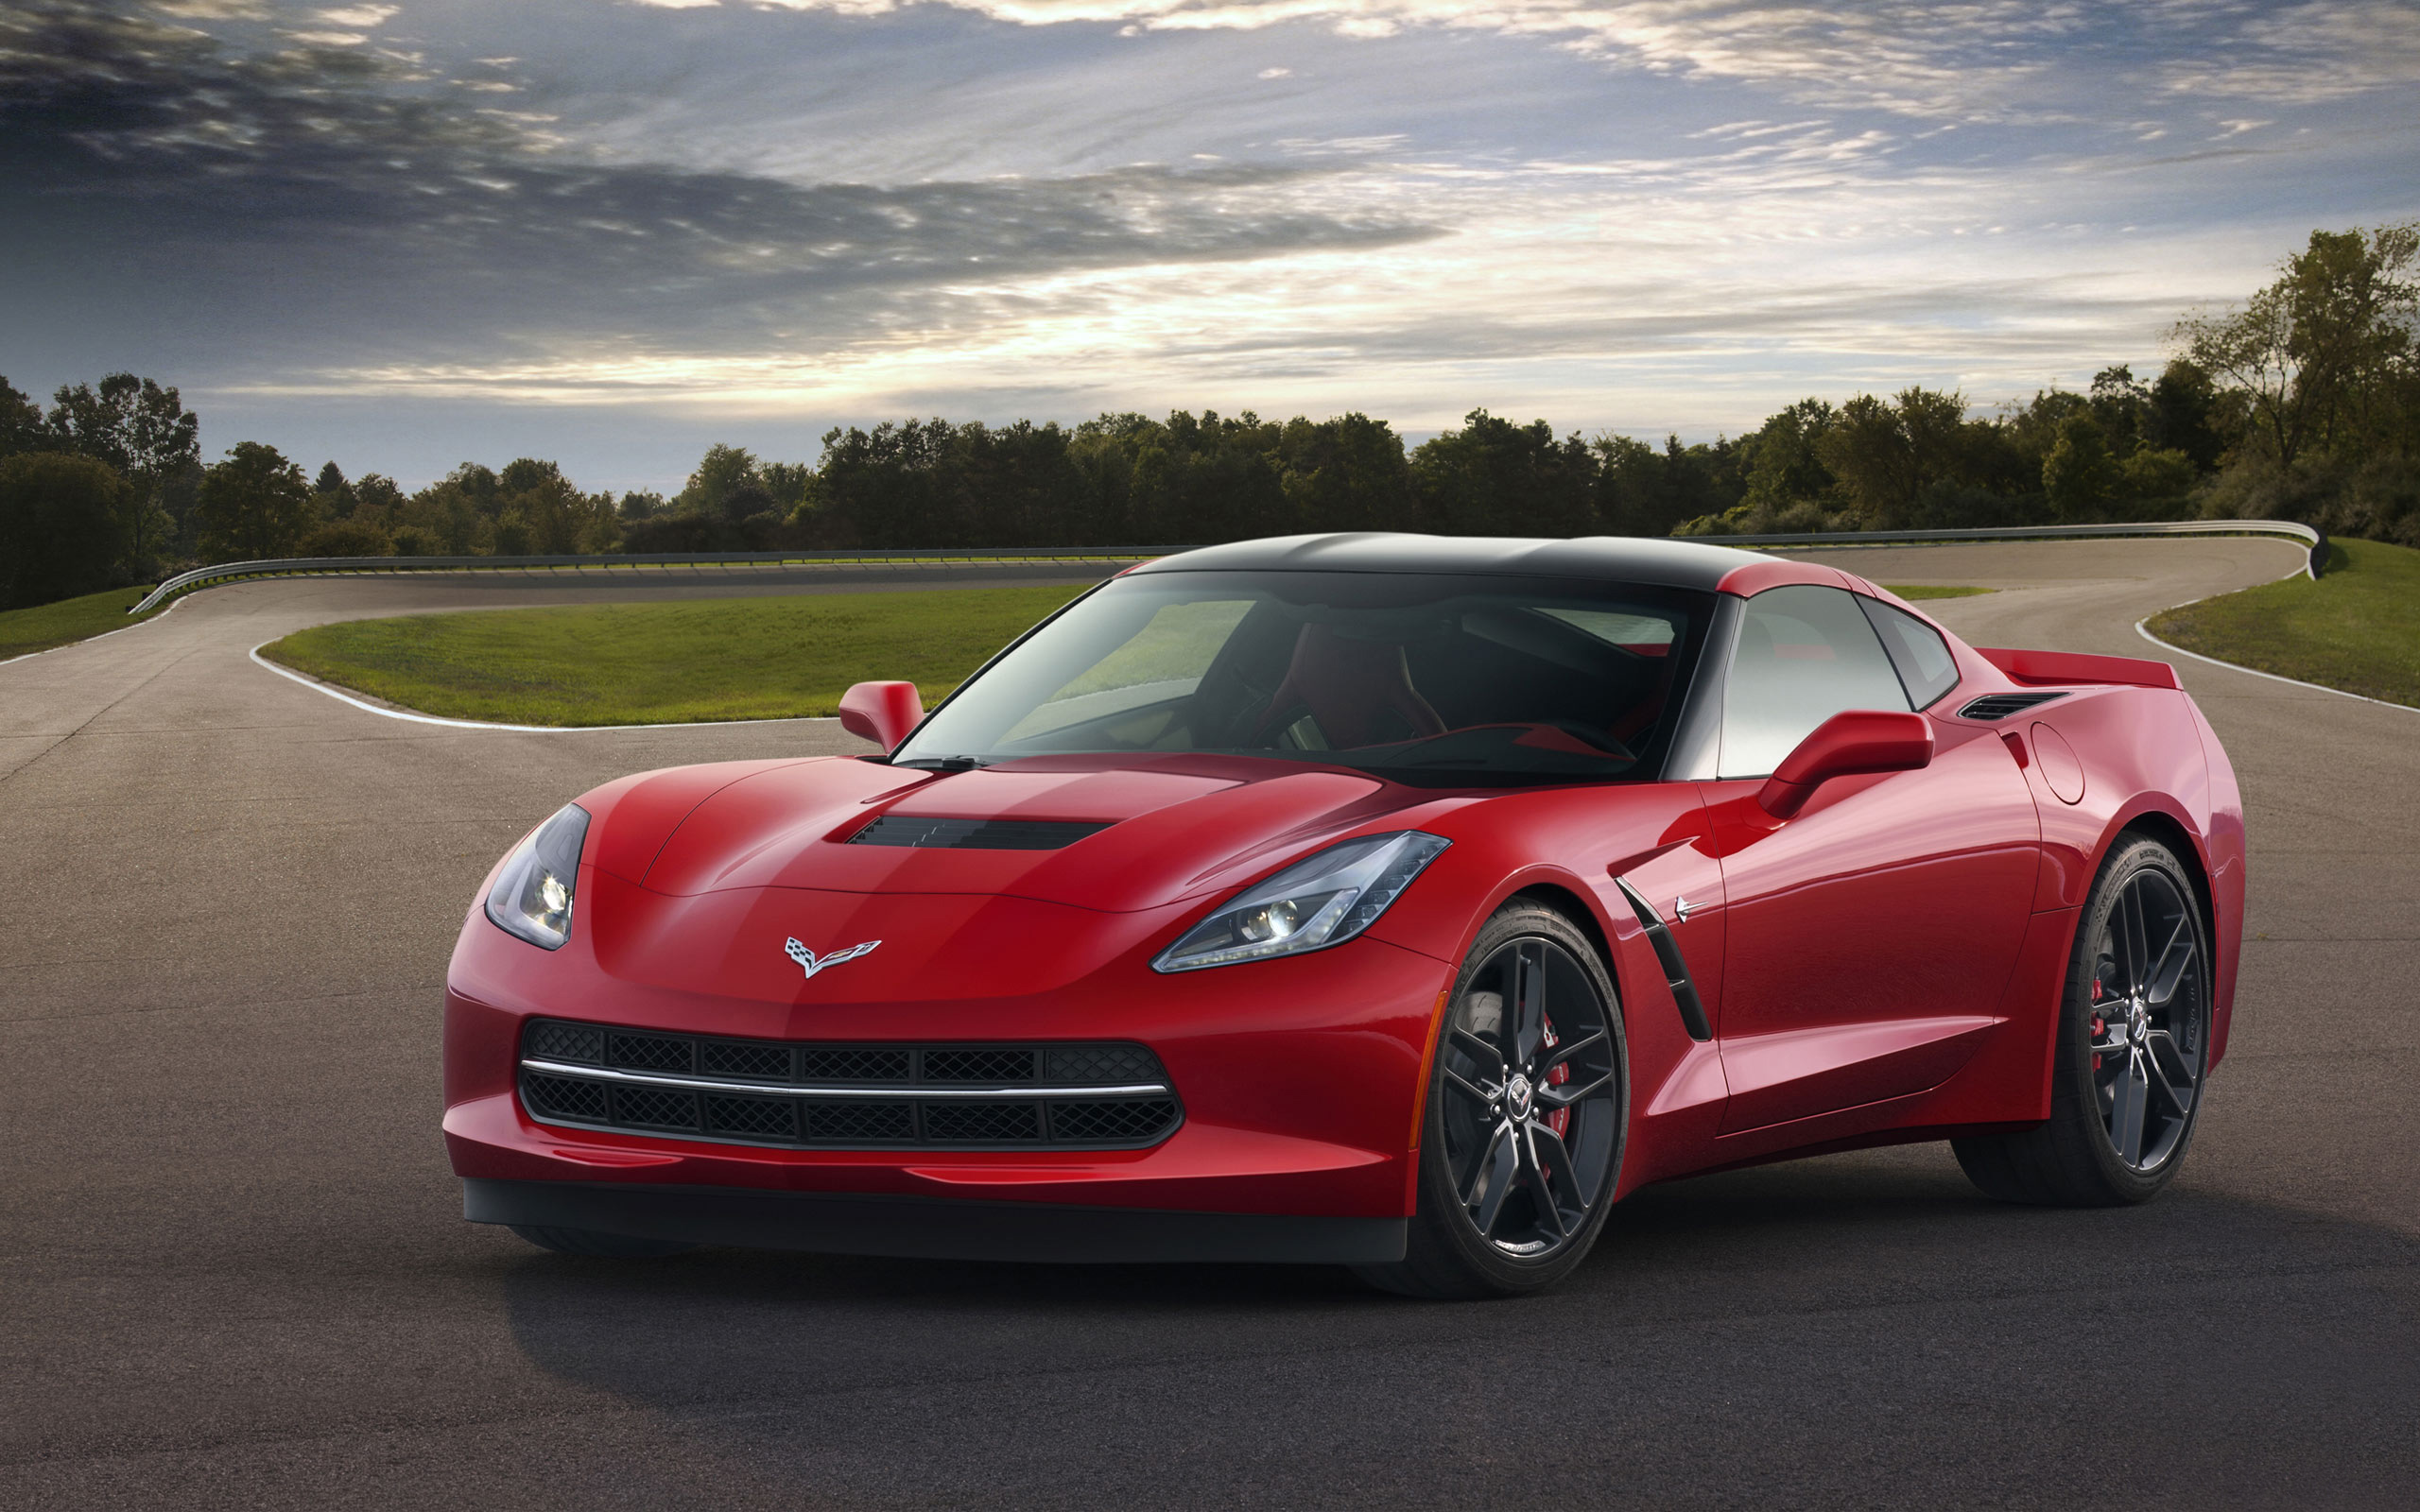 Corvette Stingray Wallpapers  Full HD wallpaper search